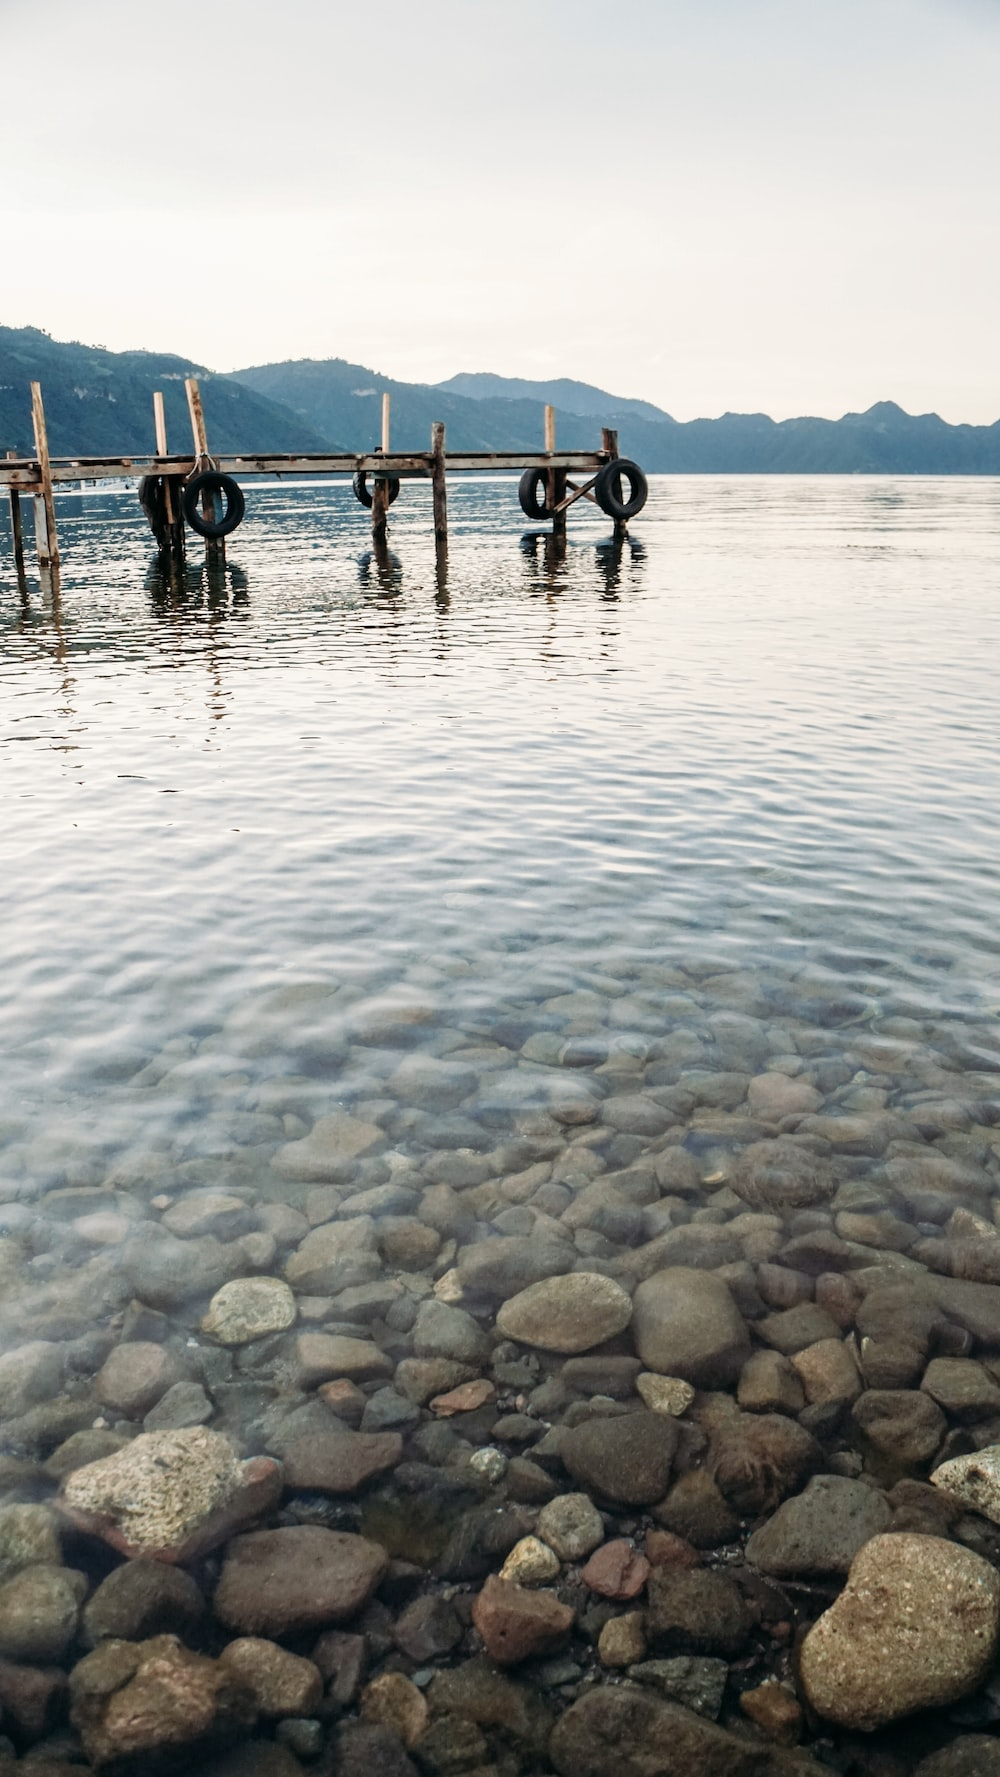 dock on water with stone at daytime